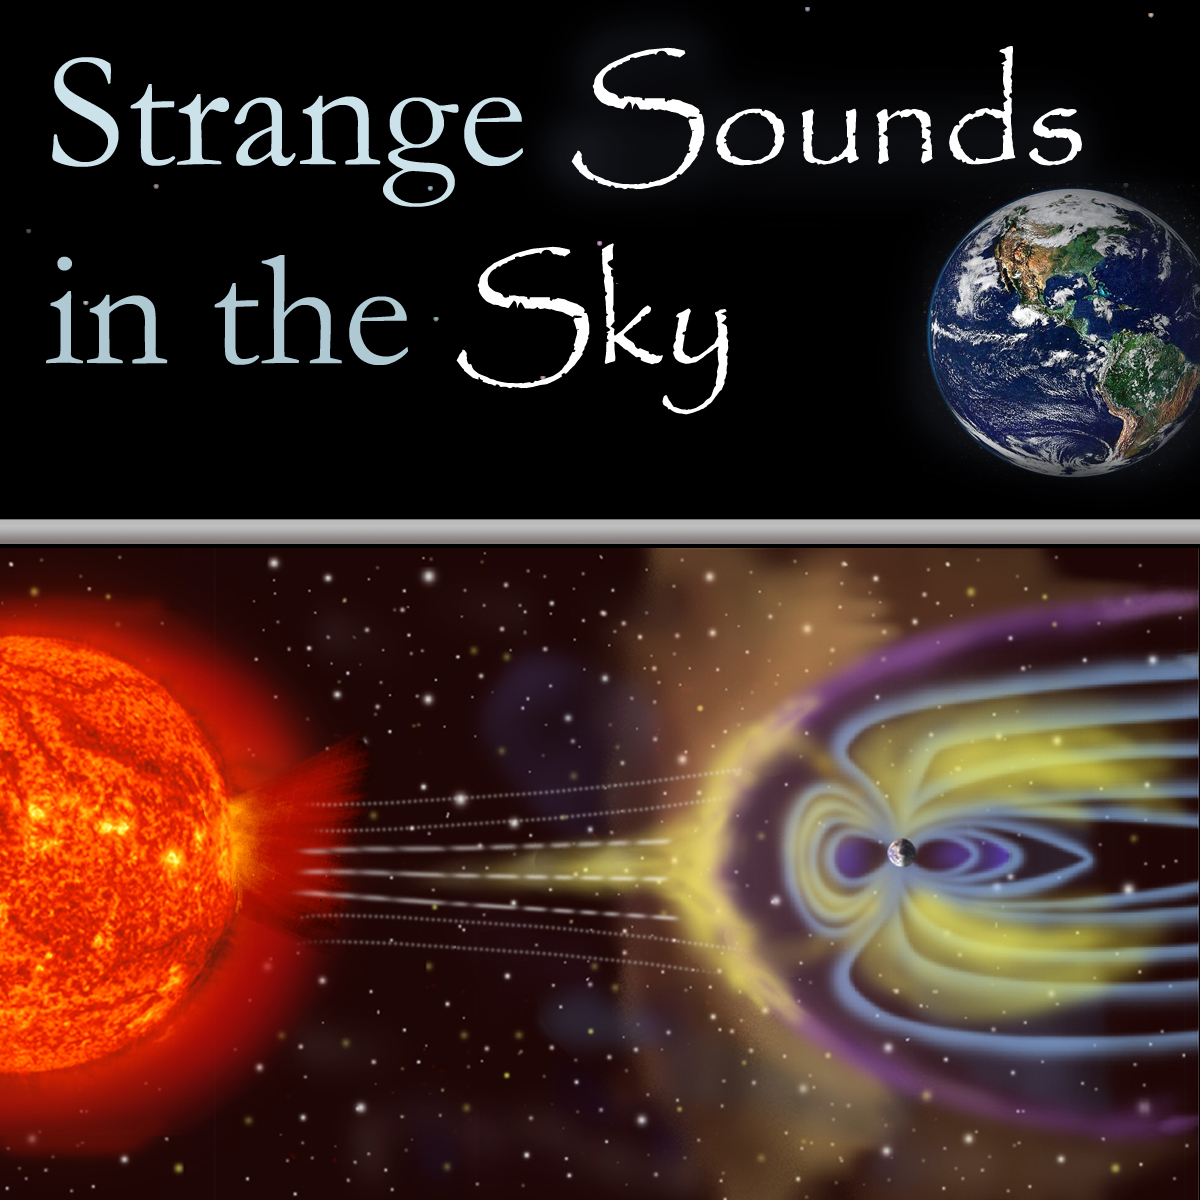 Strange Sounds in the Sky-Theories on the Earths Recent Unexplained Booms, Tonal and Metallic Soundscapes